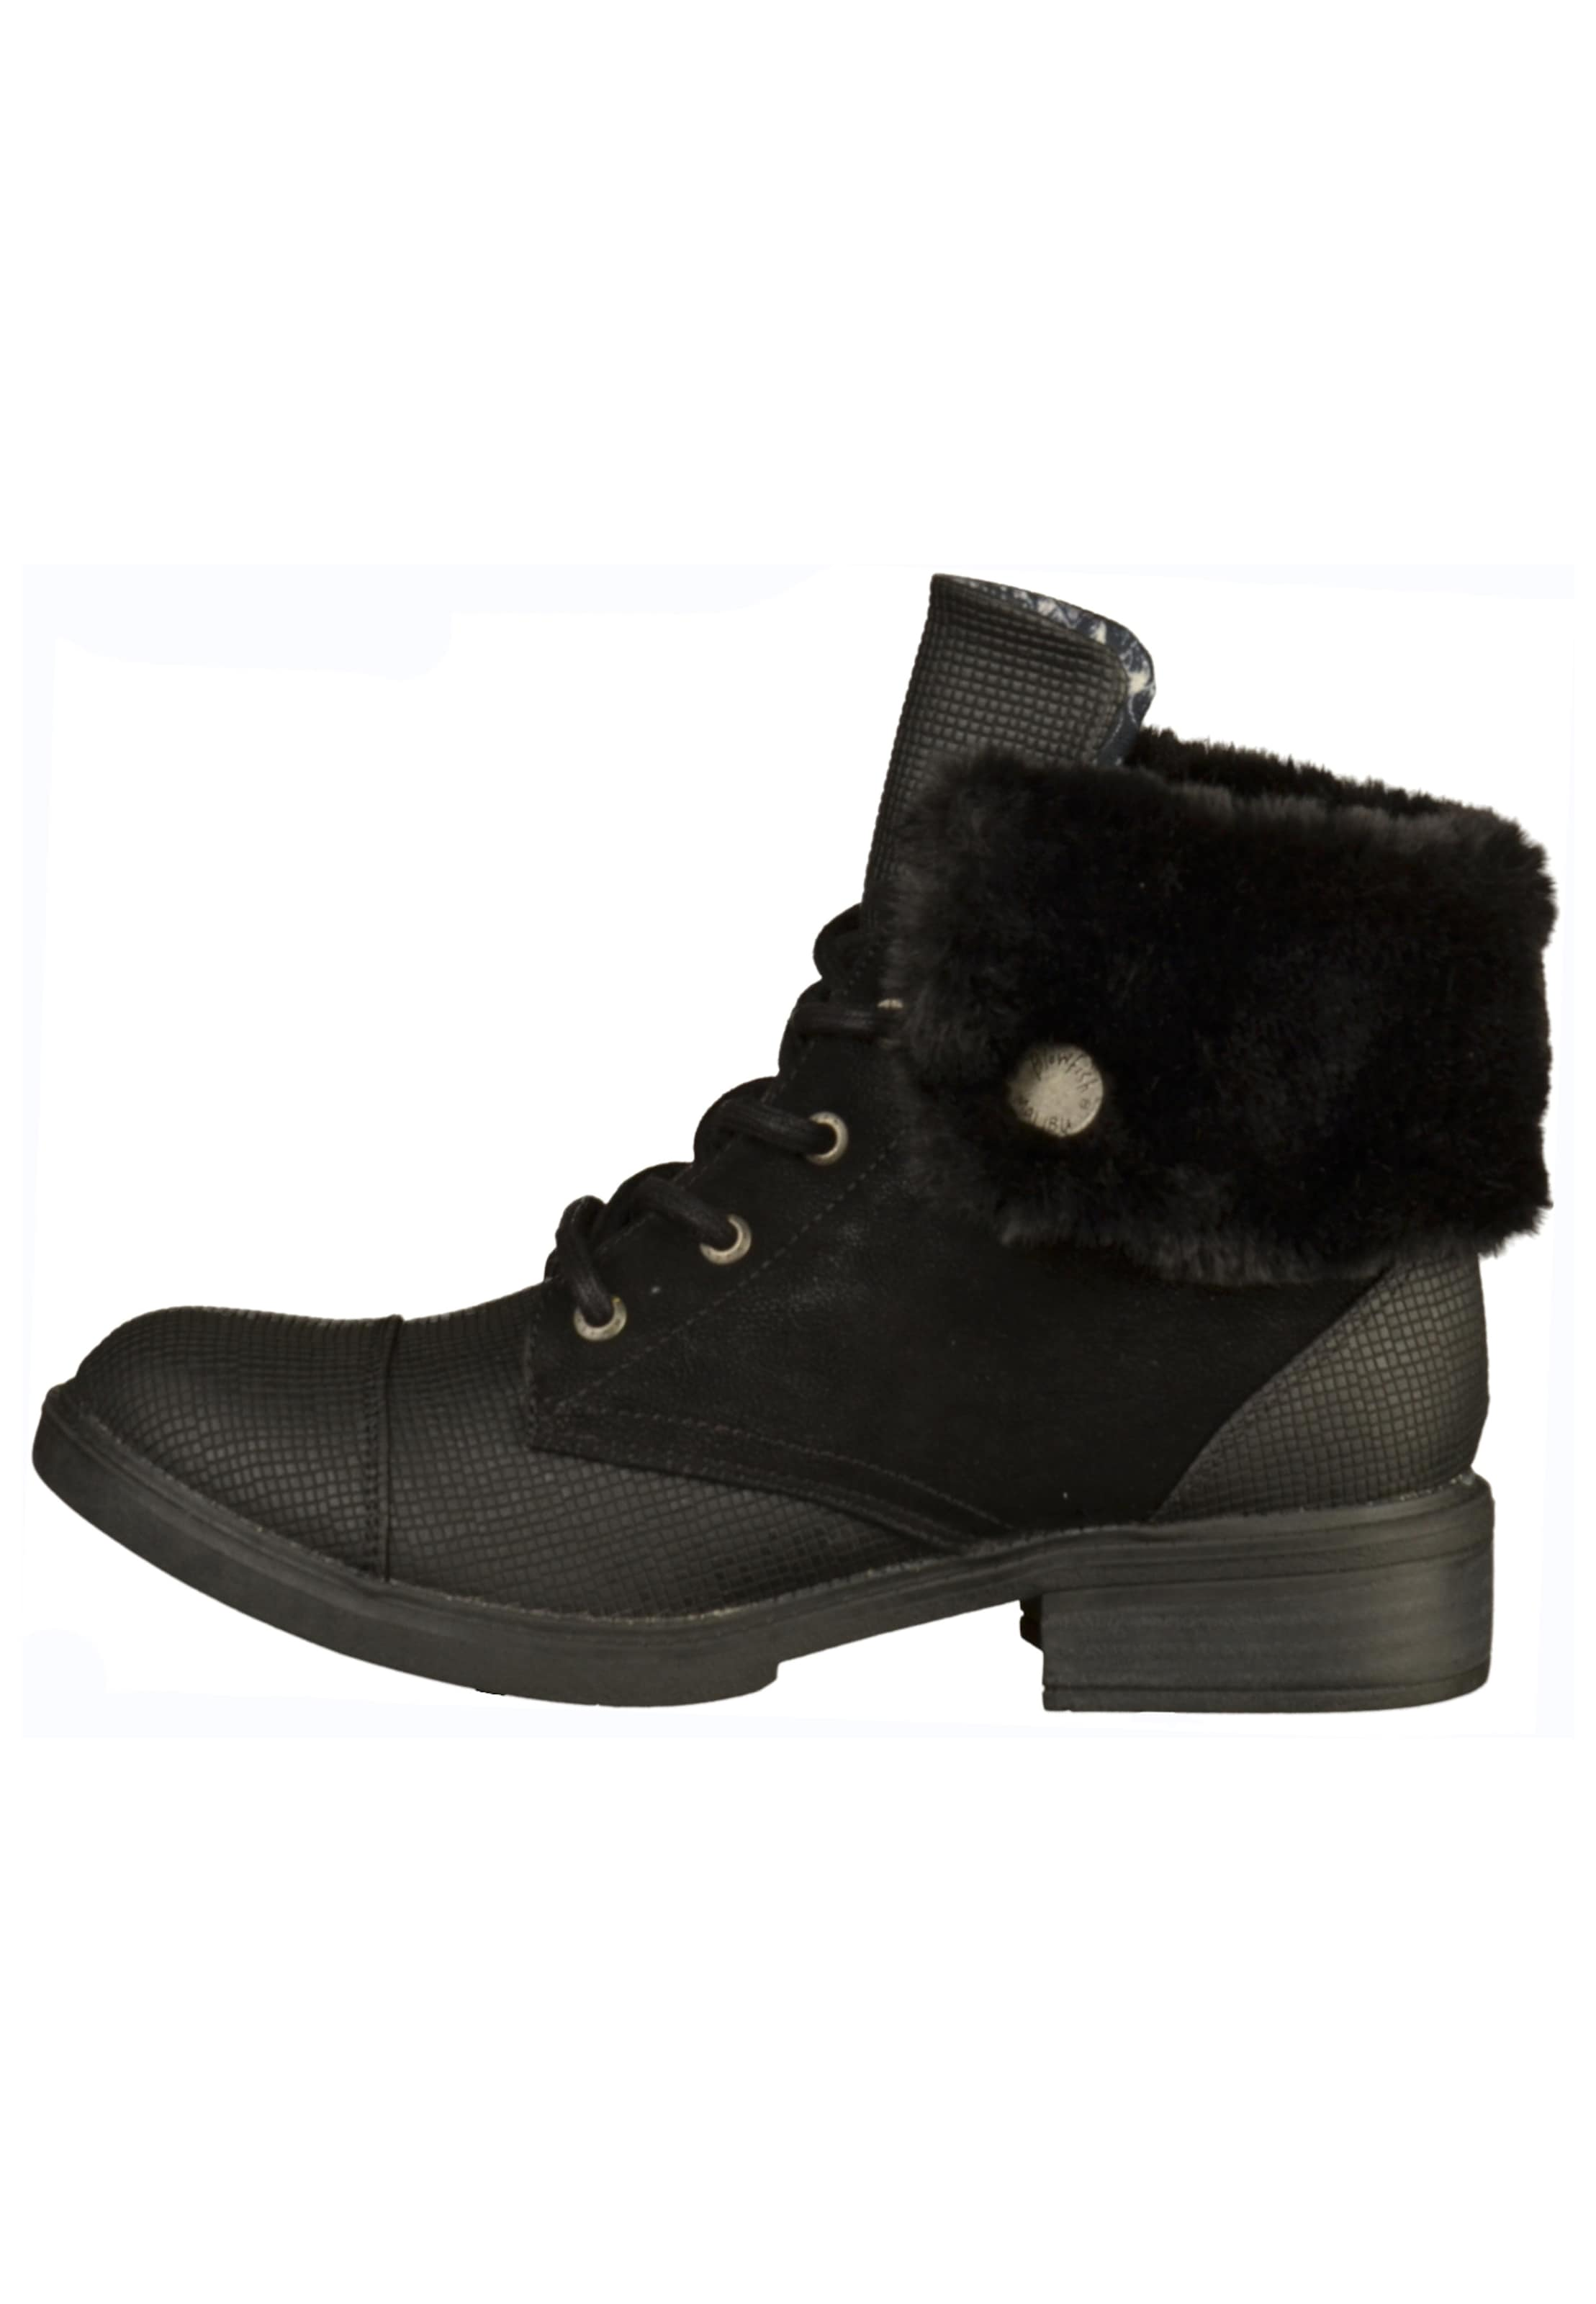 Blowfish En Noir Lacets Bottines À Ygb7f6y